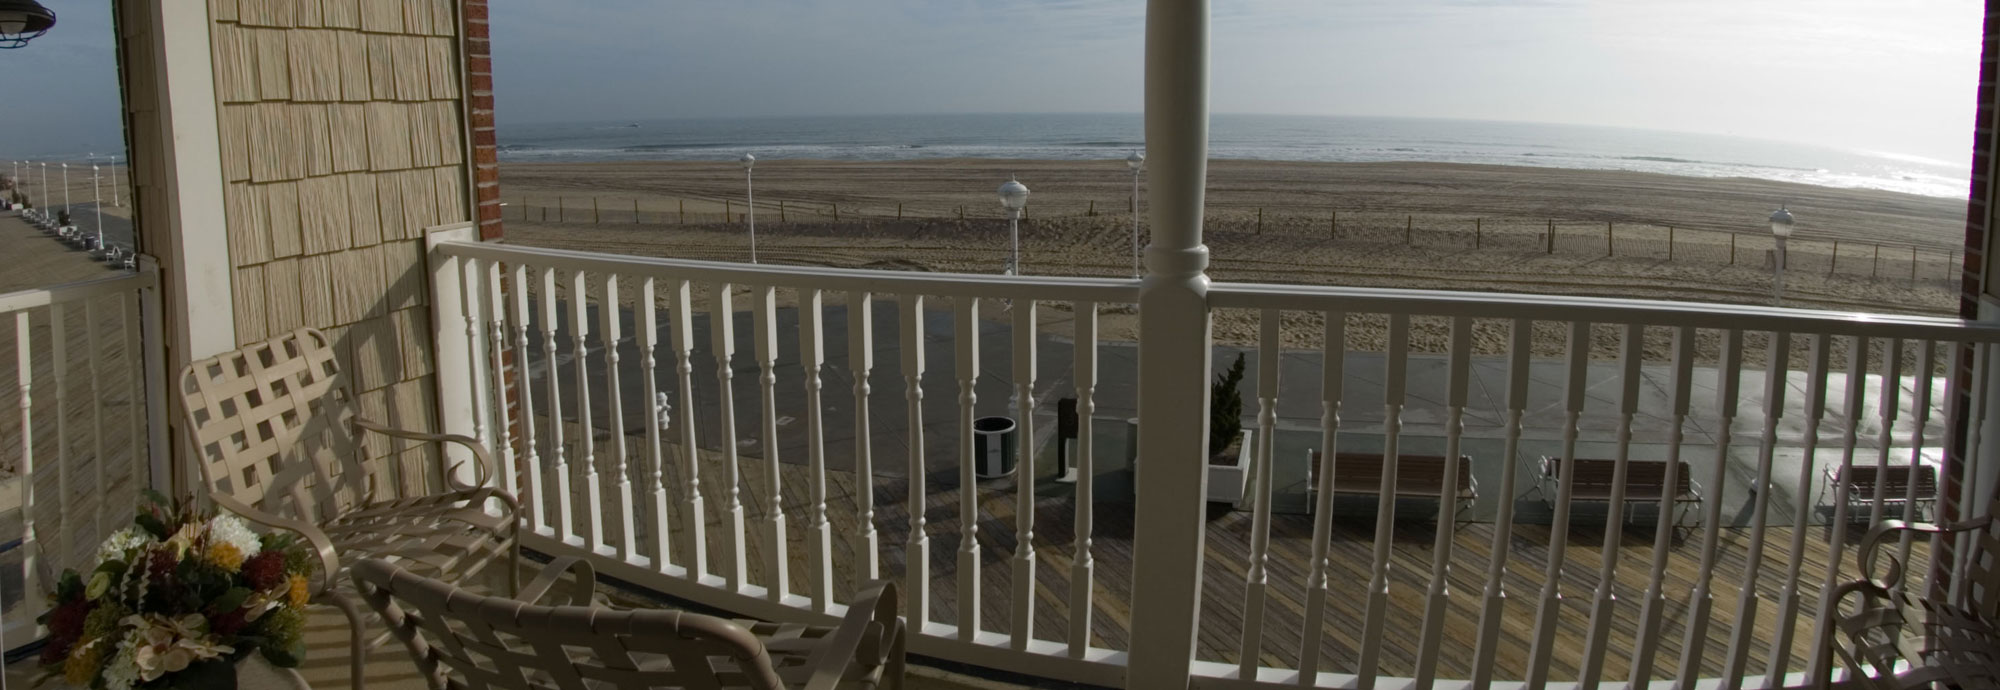 Oceanfront Balcony on the Boardwalk in Ocean City, MD